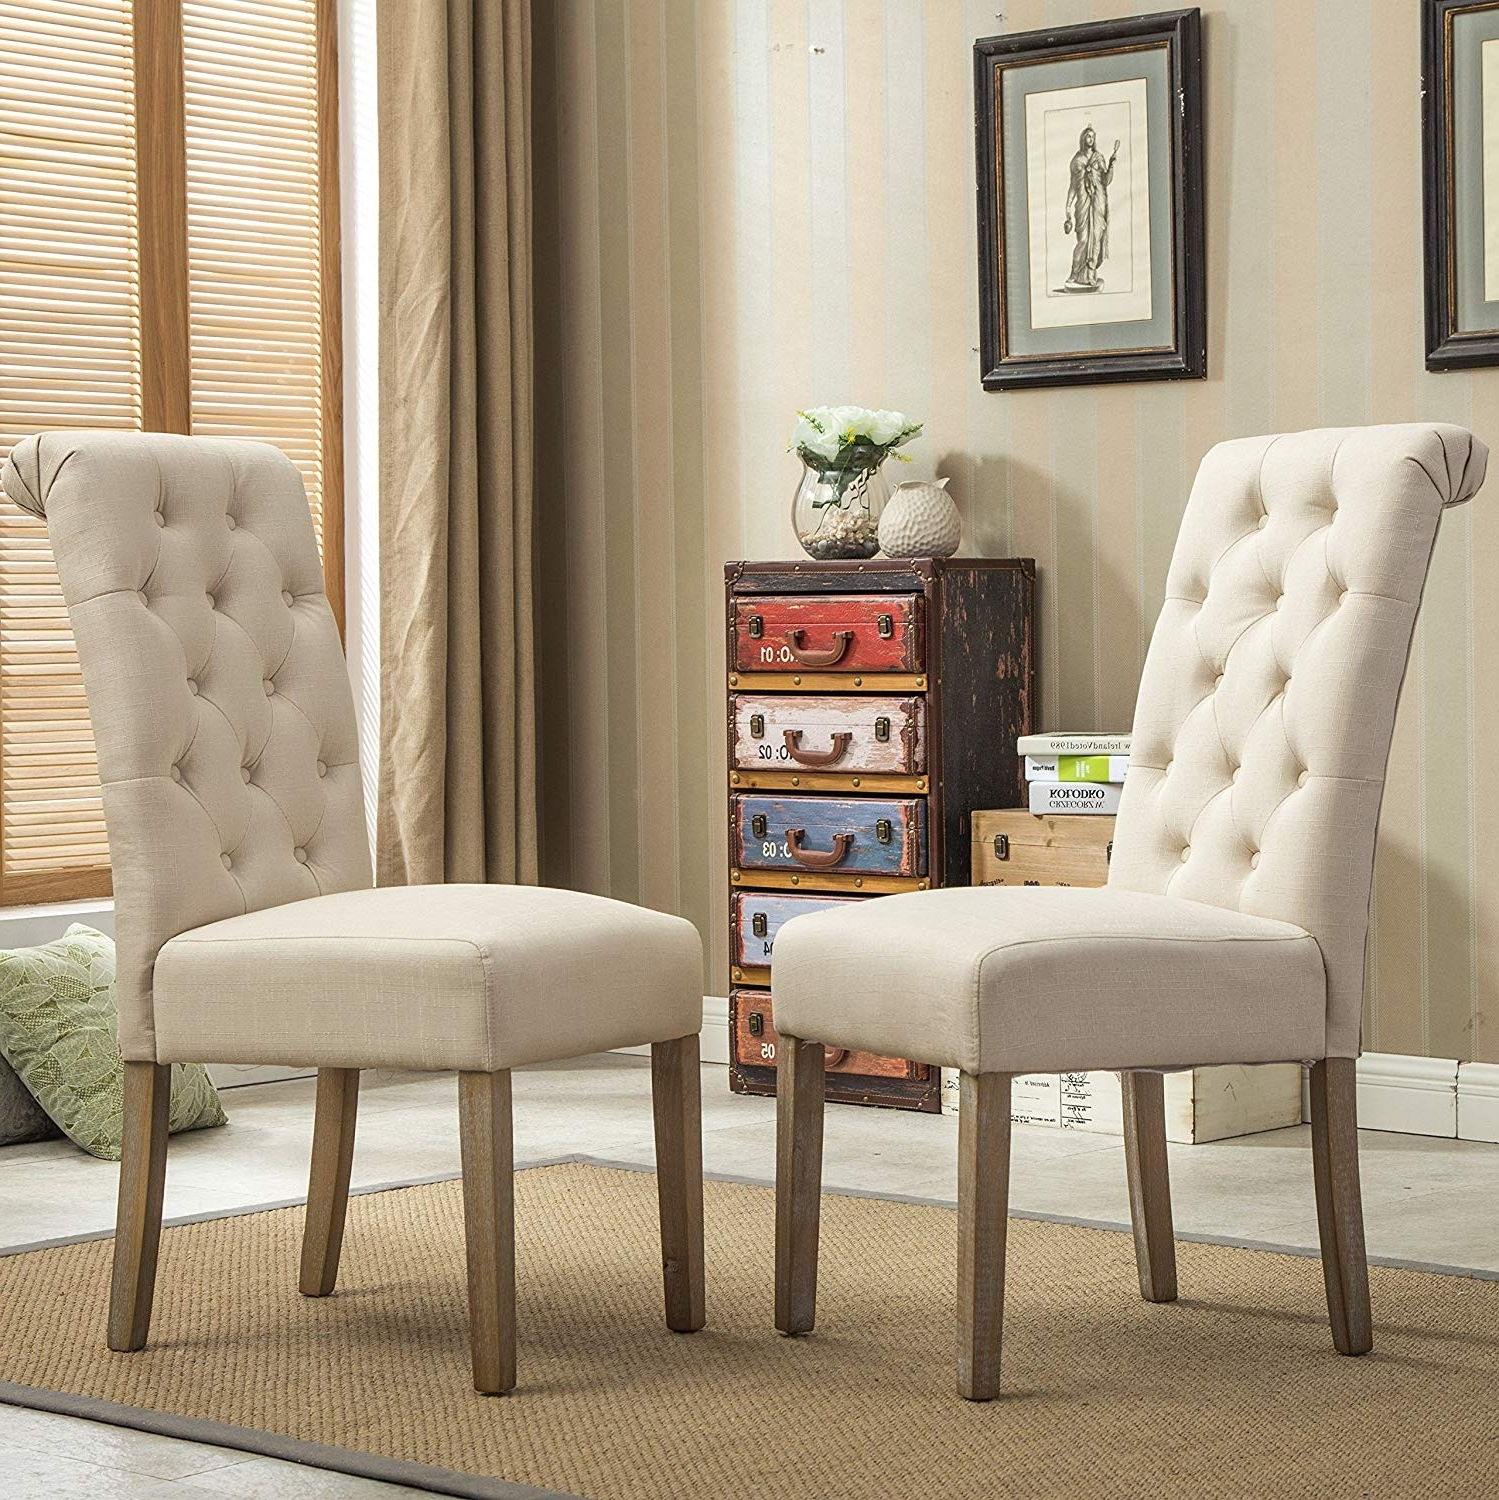 Dining Chairs With Regard To Recent Amazon – Roundhill Furniture Habit Solid Wood Tufted Parsons (View 12 of 25)